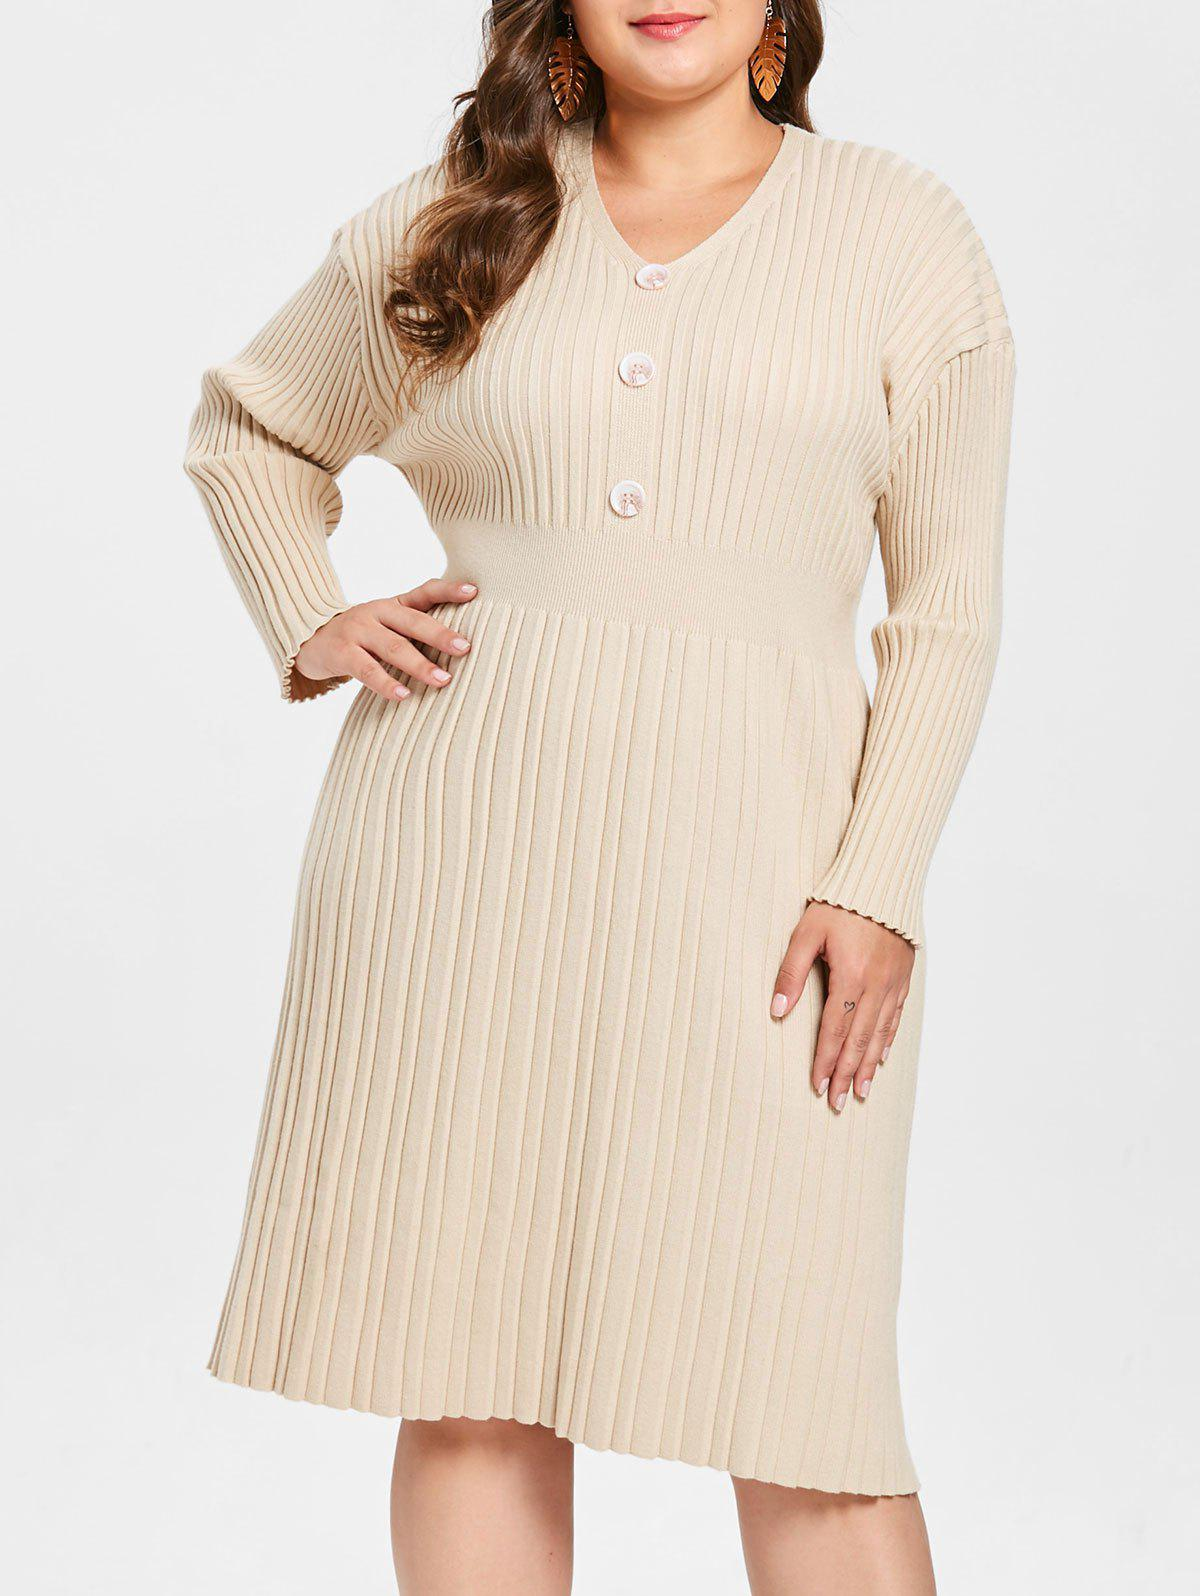 Plus Size Ribbed Sweater Dress with Buttons